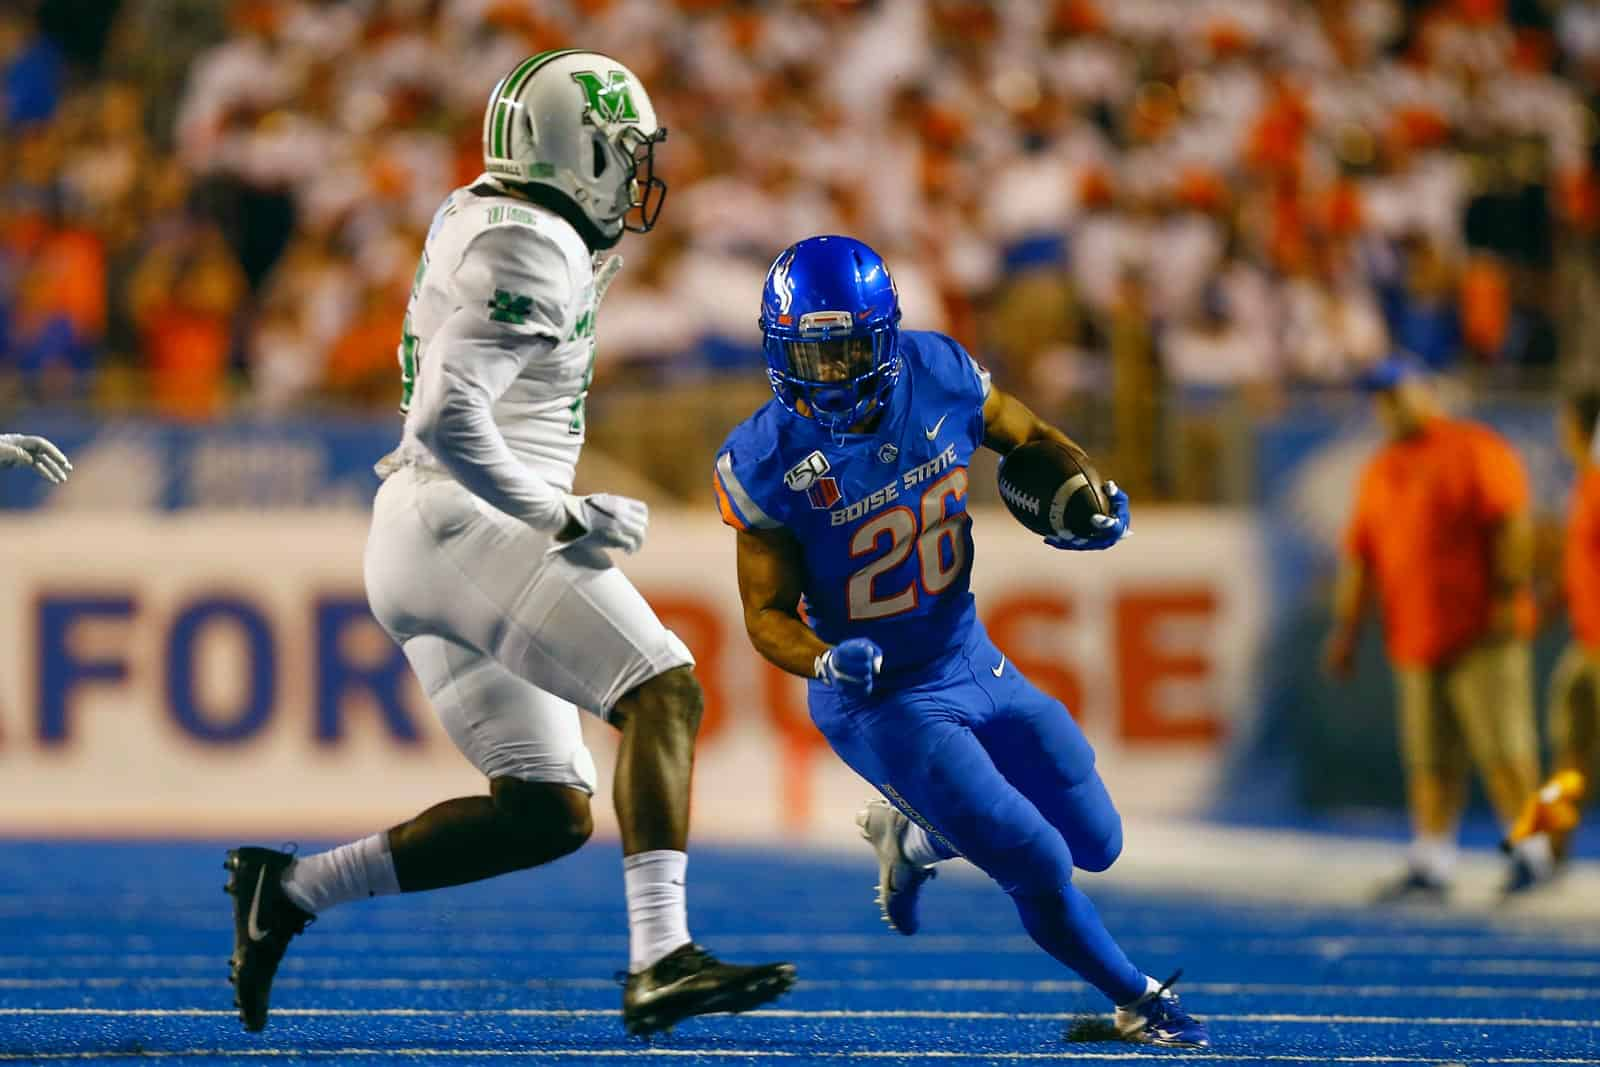 Boise State-Marshall